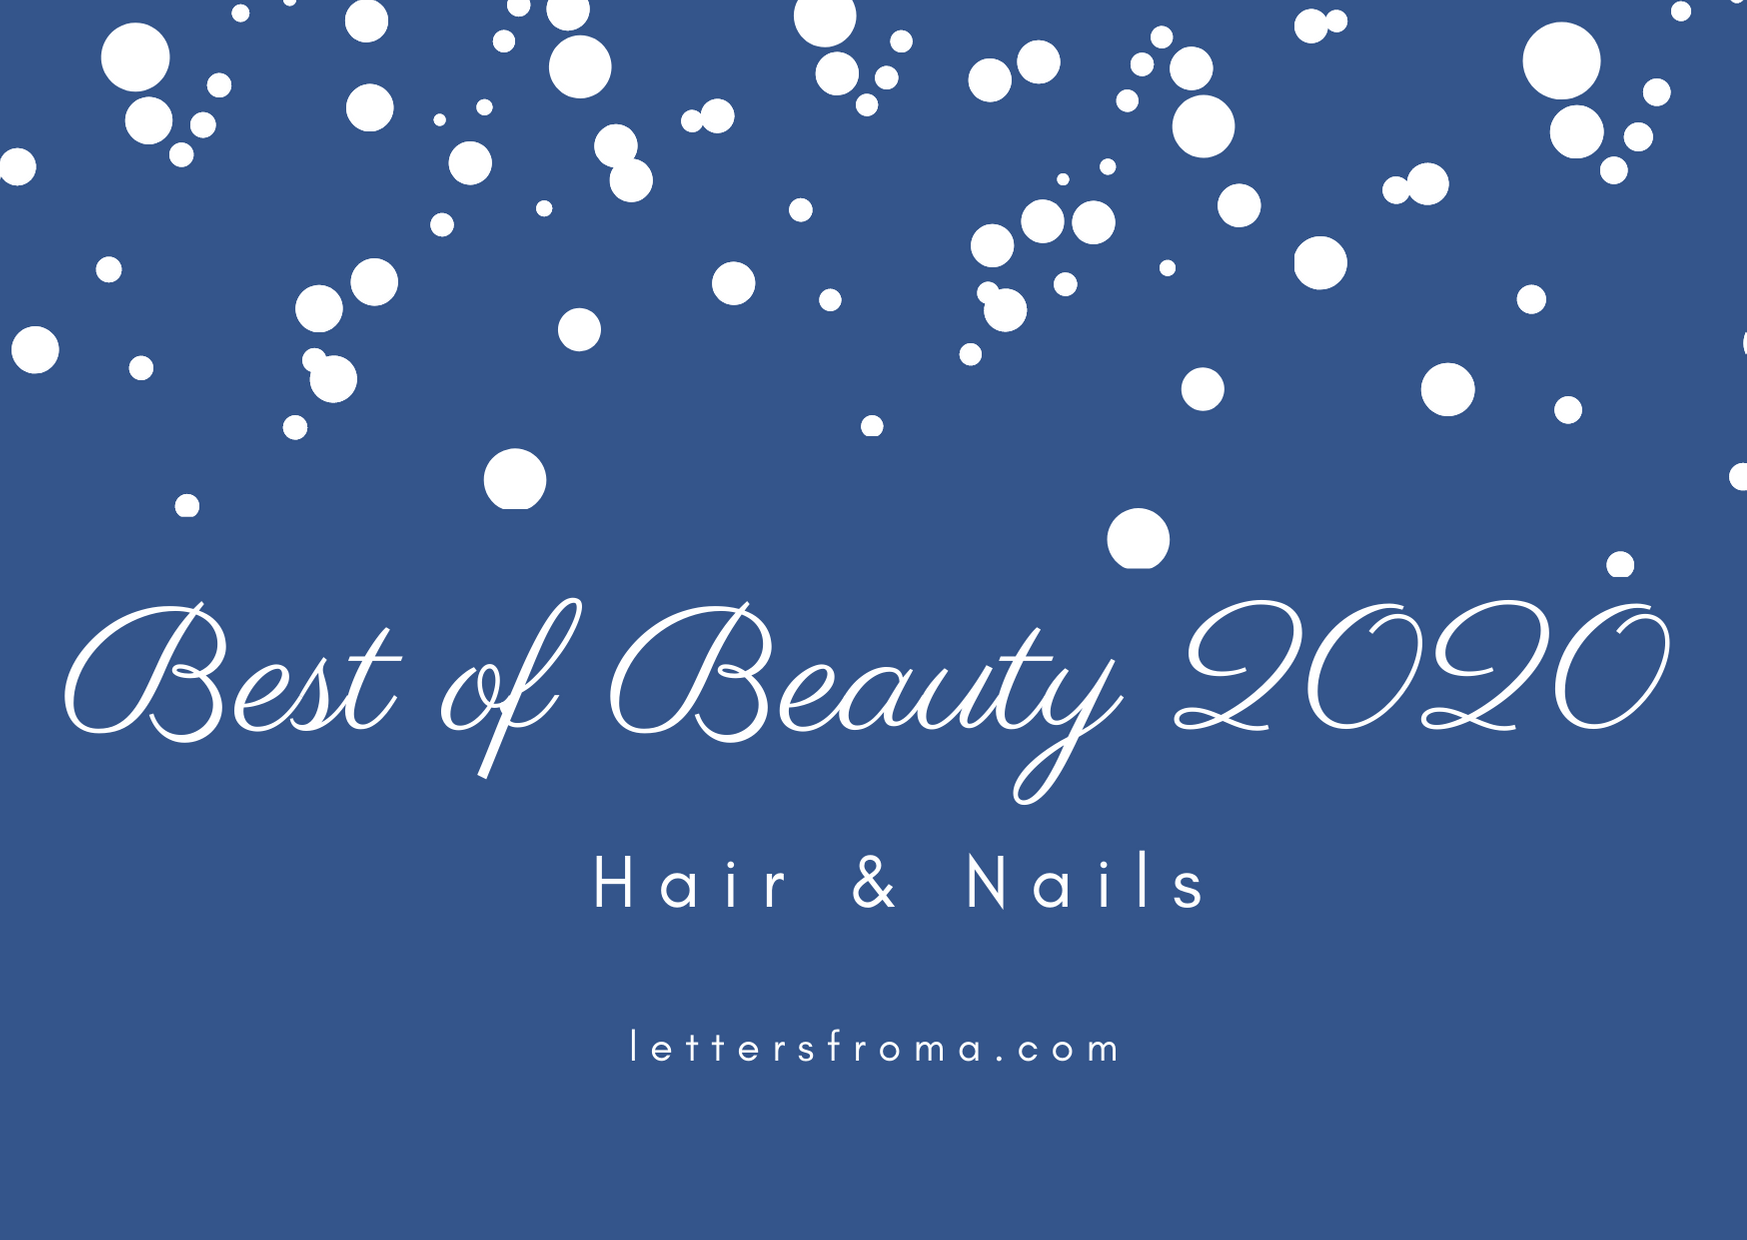 Best of Beauty 2020 - Hair & Nails